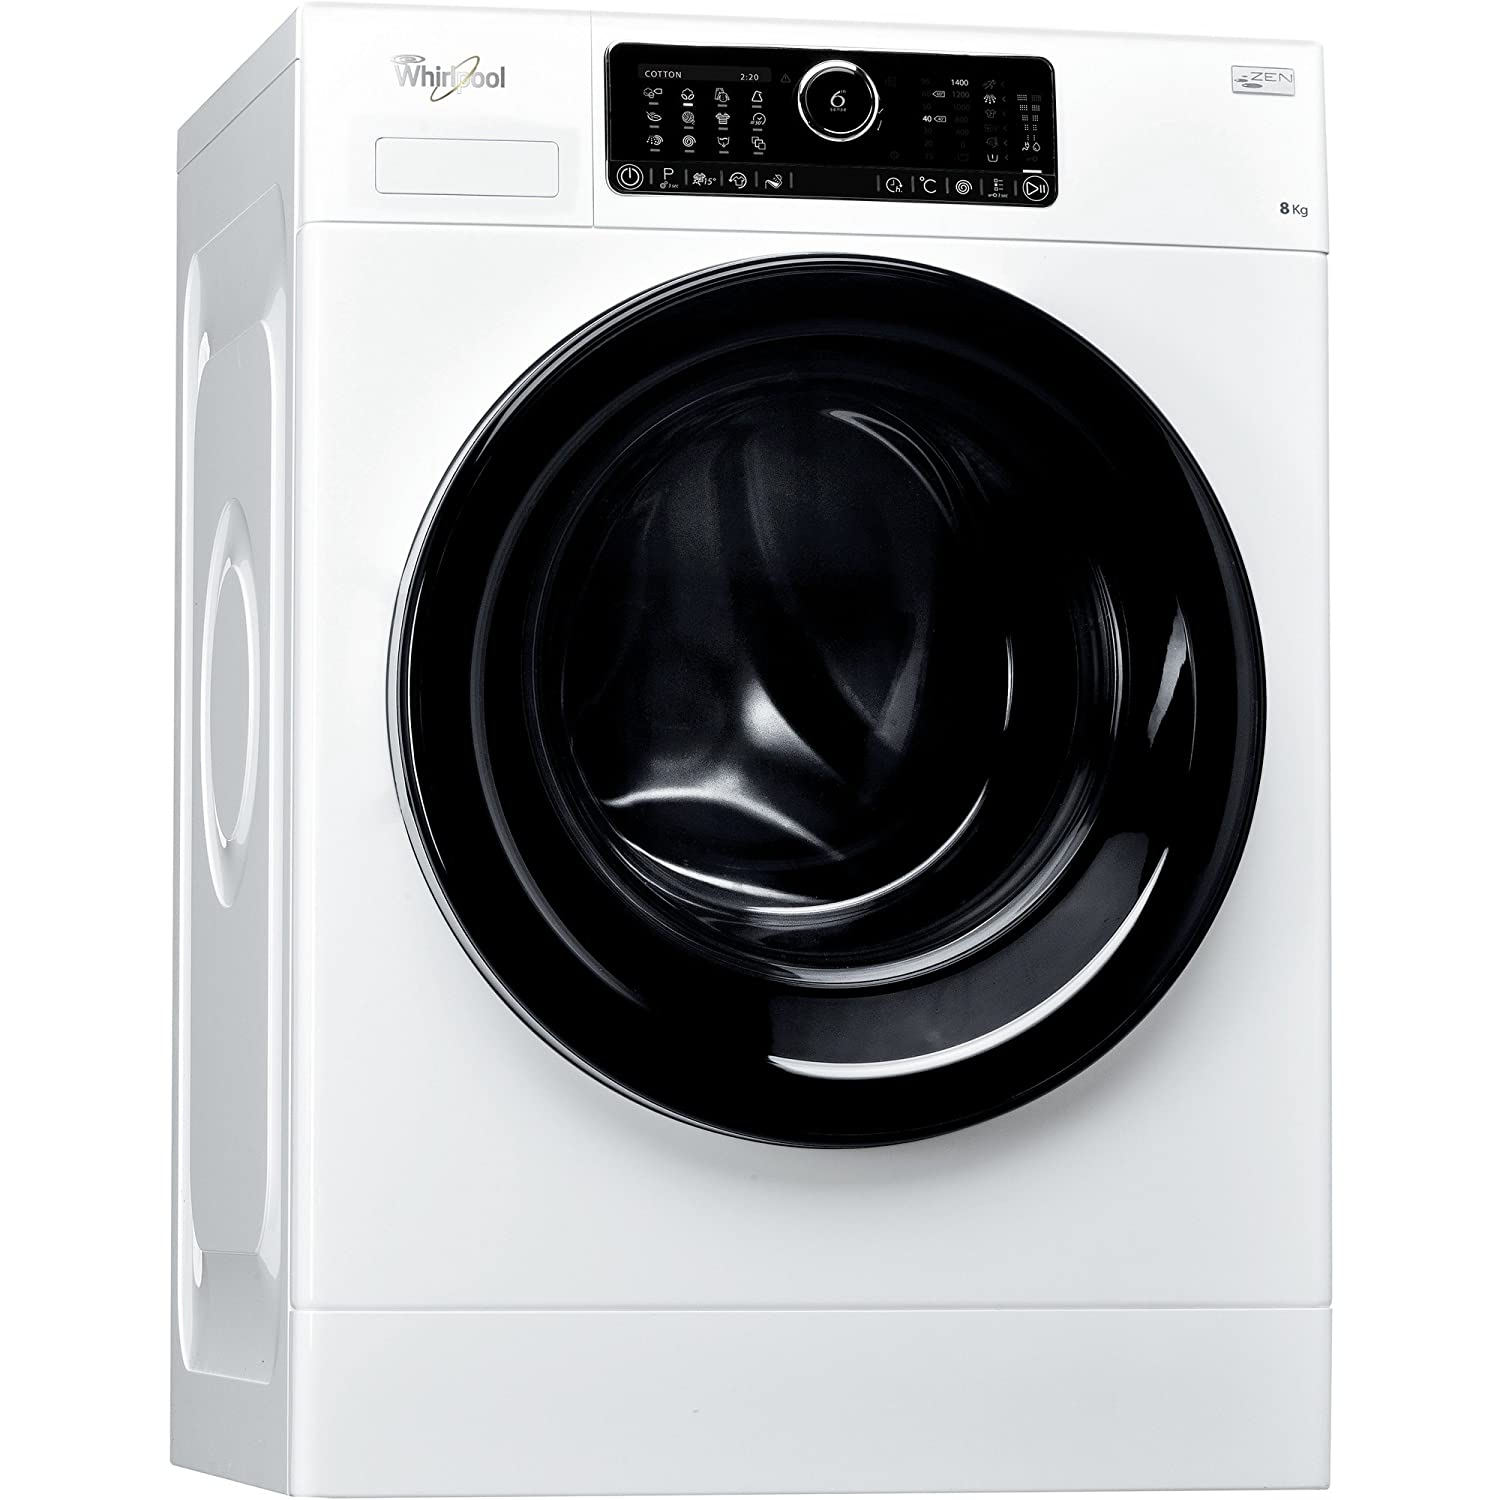 Whirlpool FSCR80430 Freestanding 8kg 1400RPM A+++ White Front-load ...